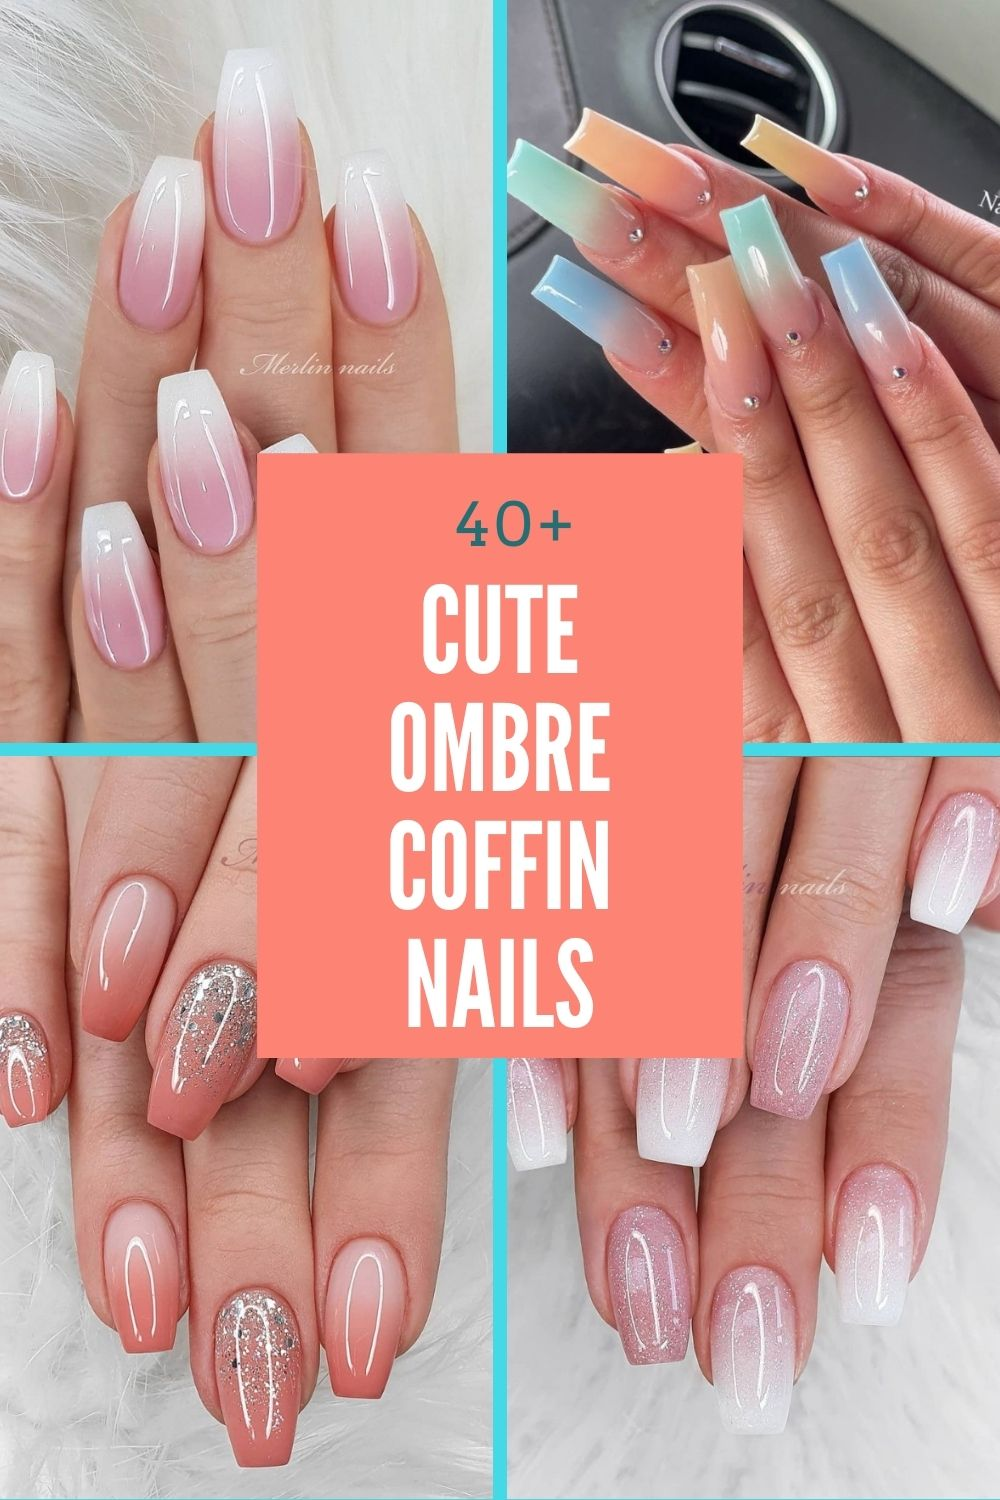 40+Cute Ombre coffin nails for young girls